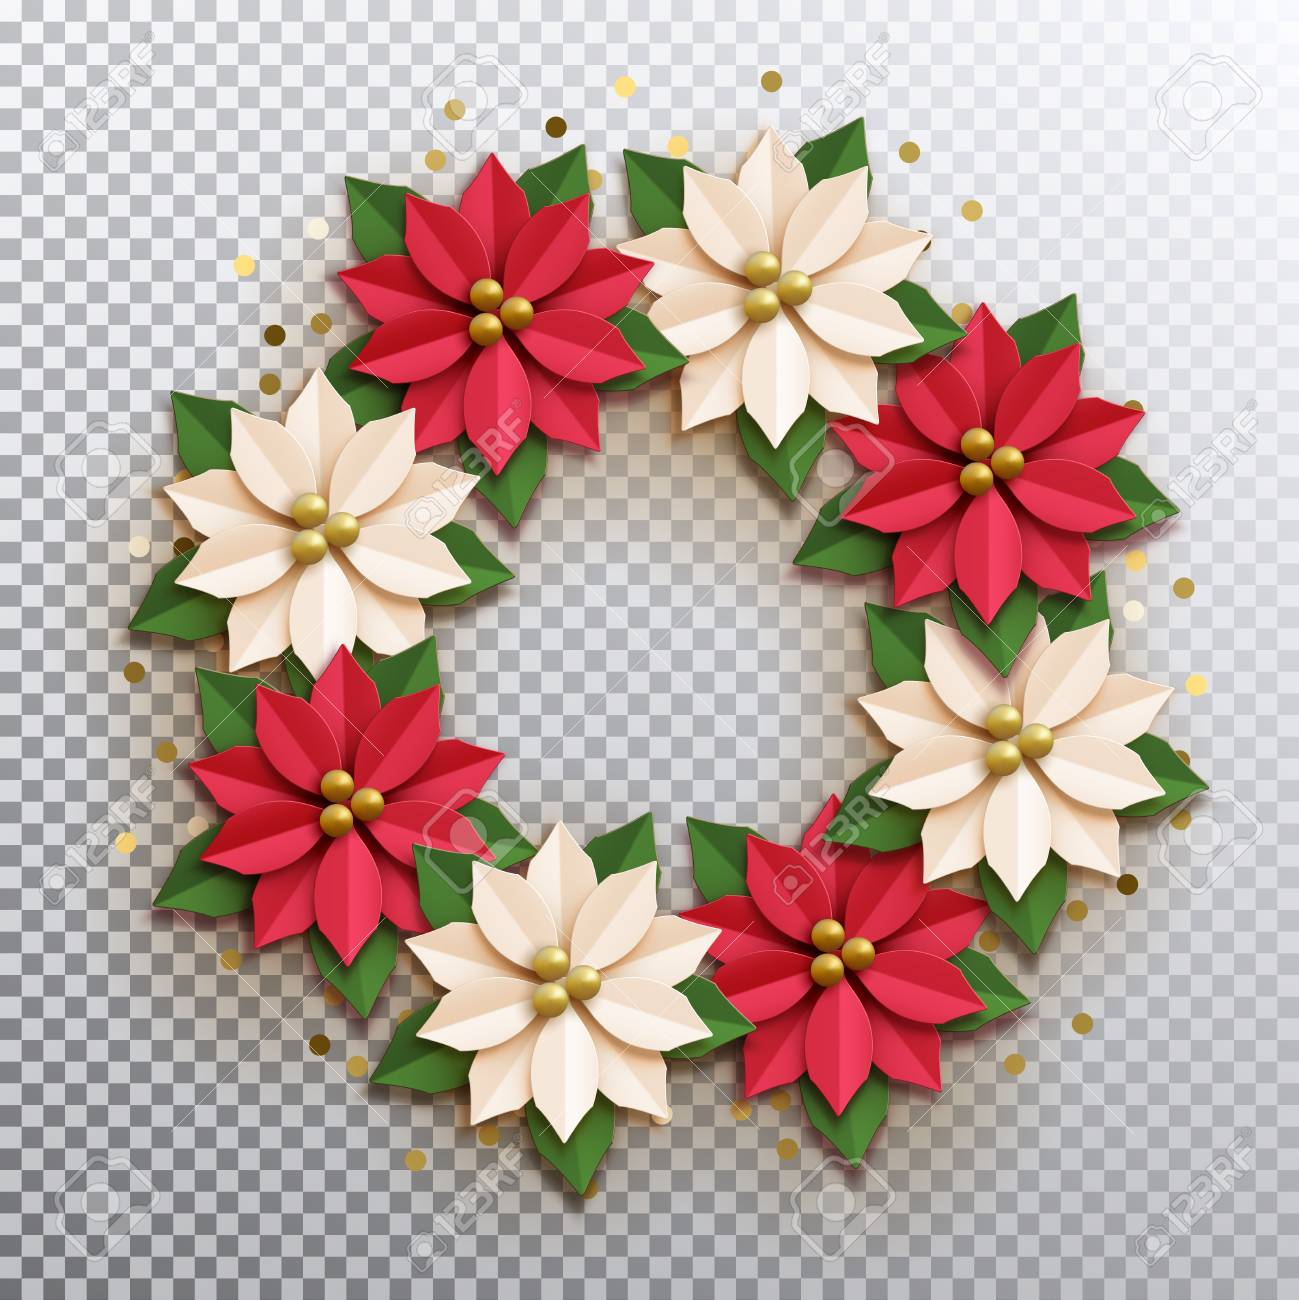 Christmas Star Paper Poinsettia Red And White Flowers Wreath